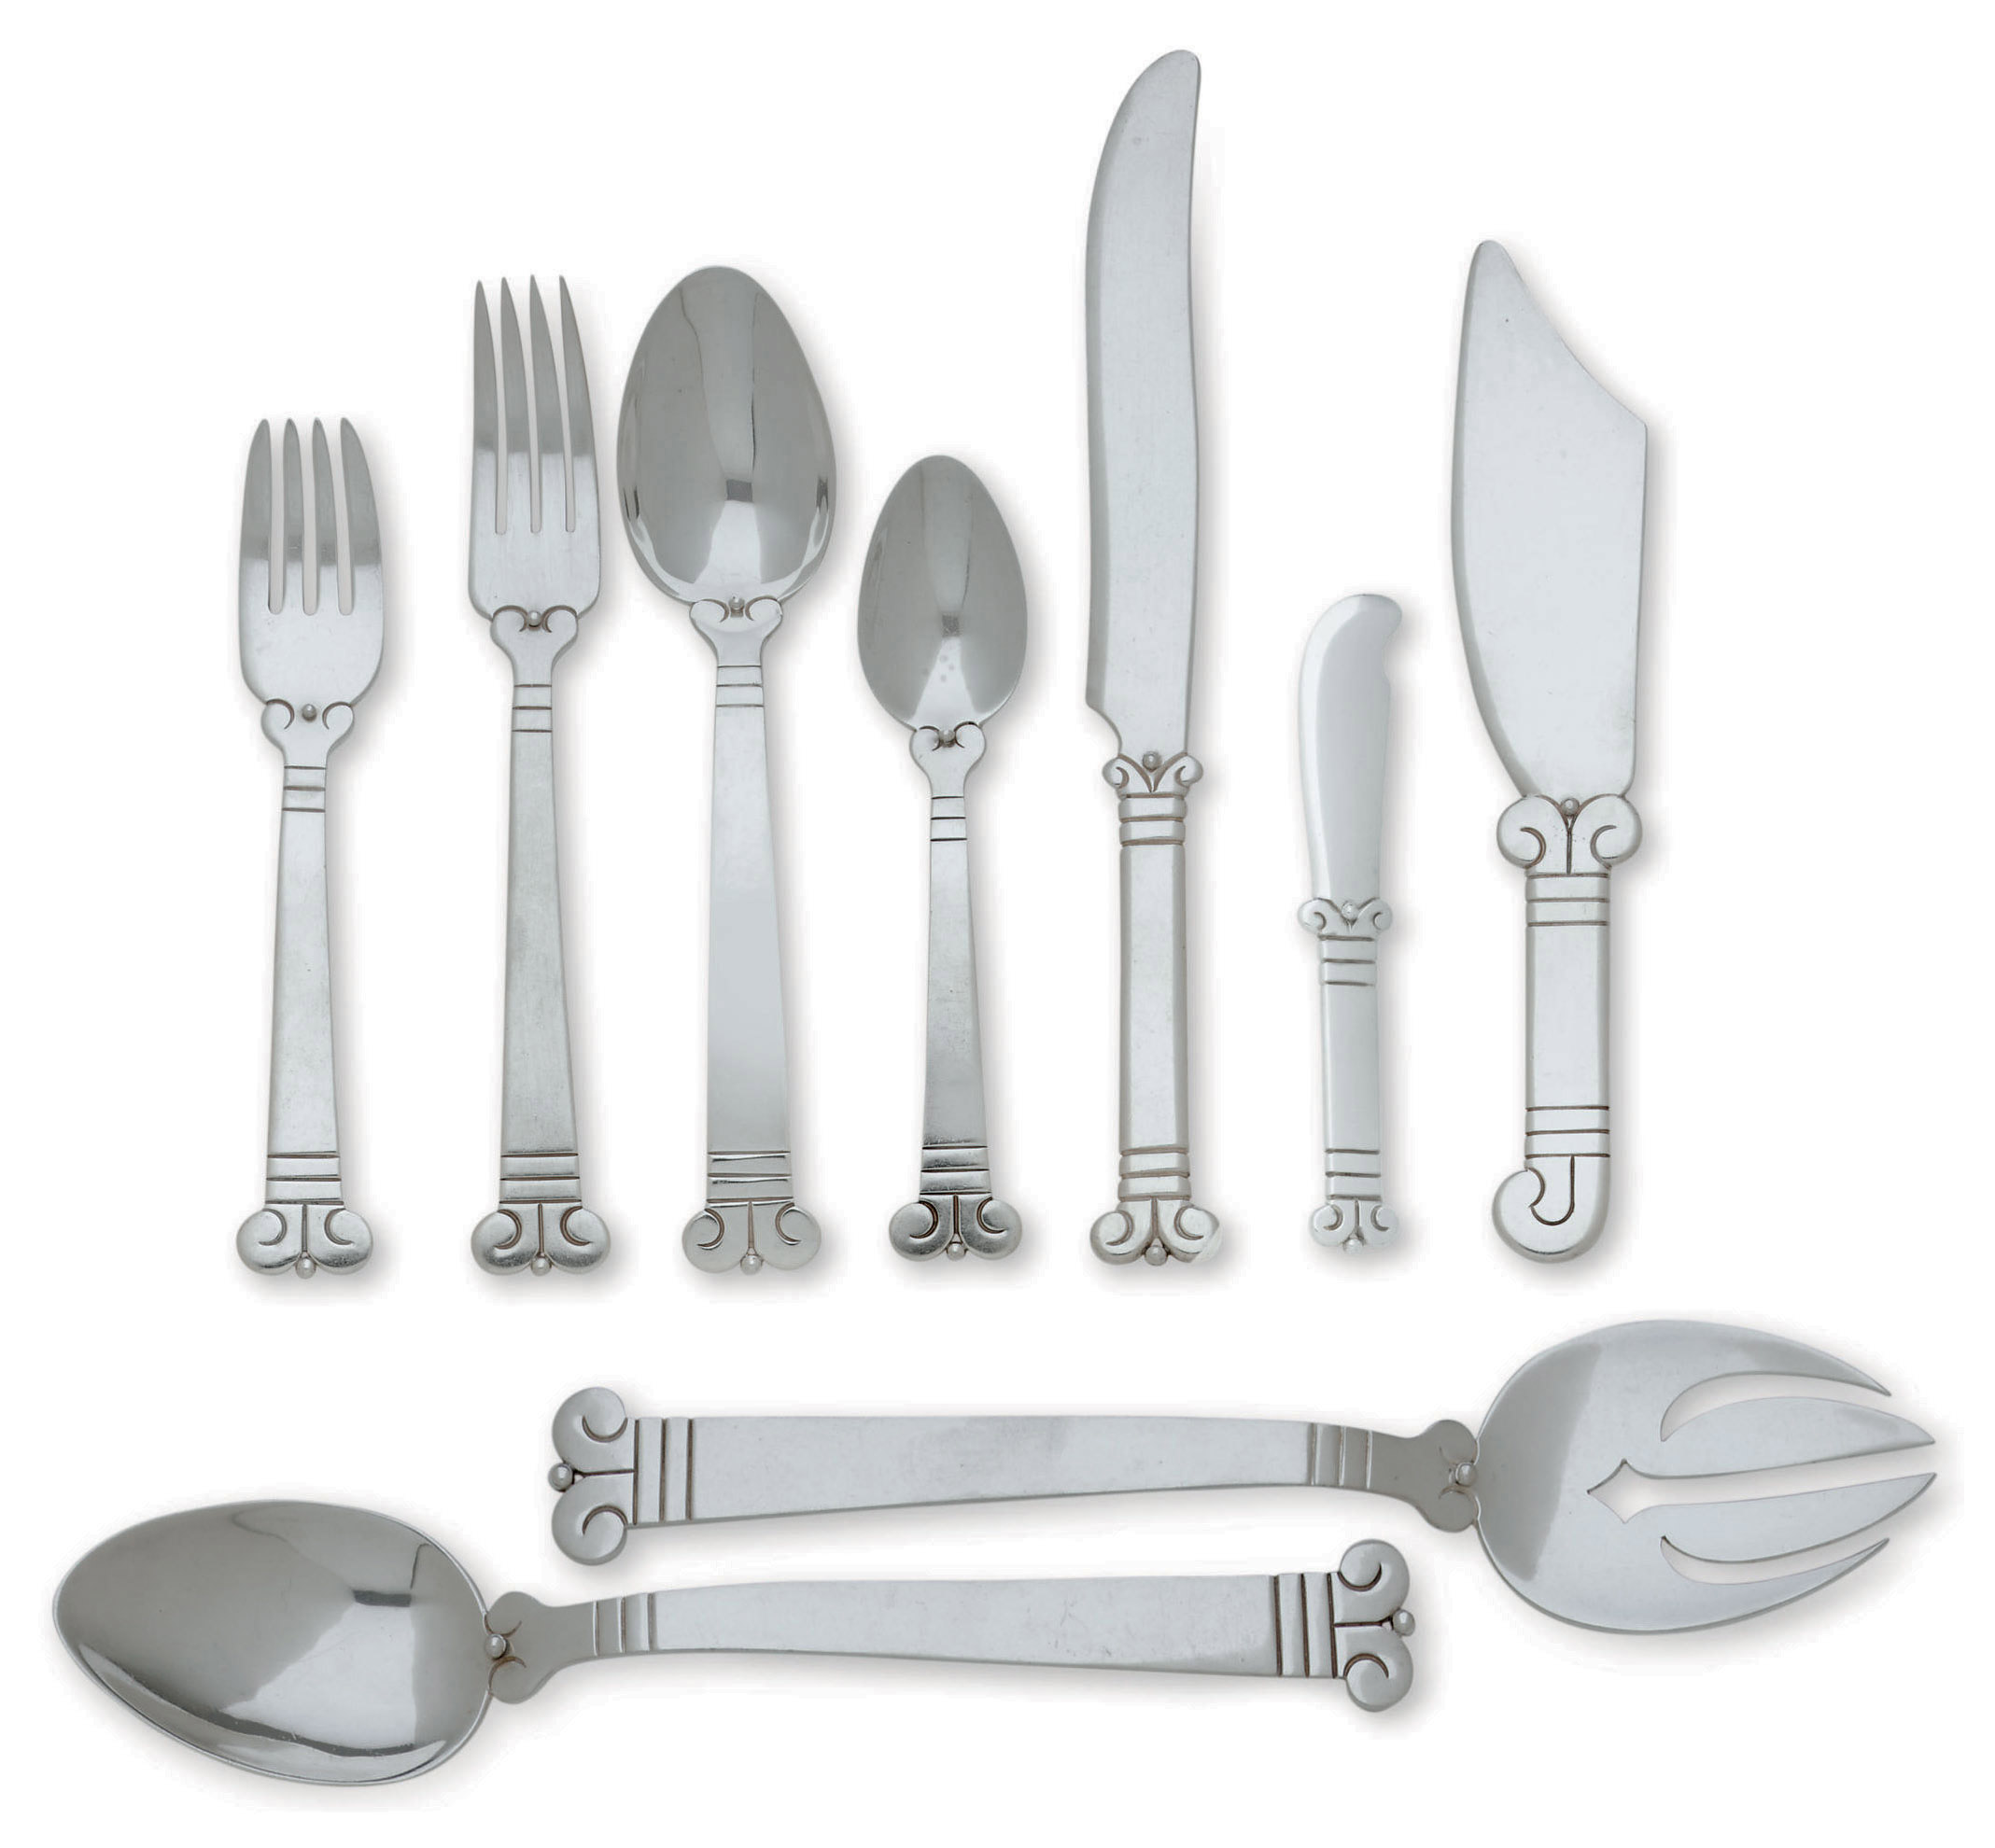 AN ASSEMBLED MEXICAN SILVER FLATWARE SERVICE